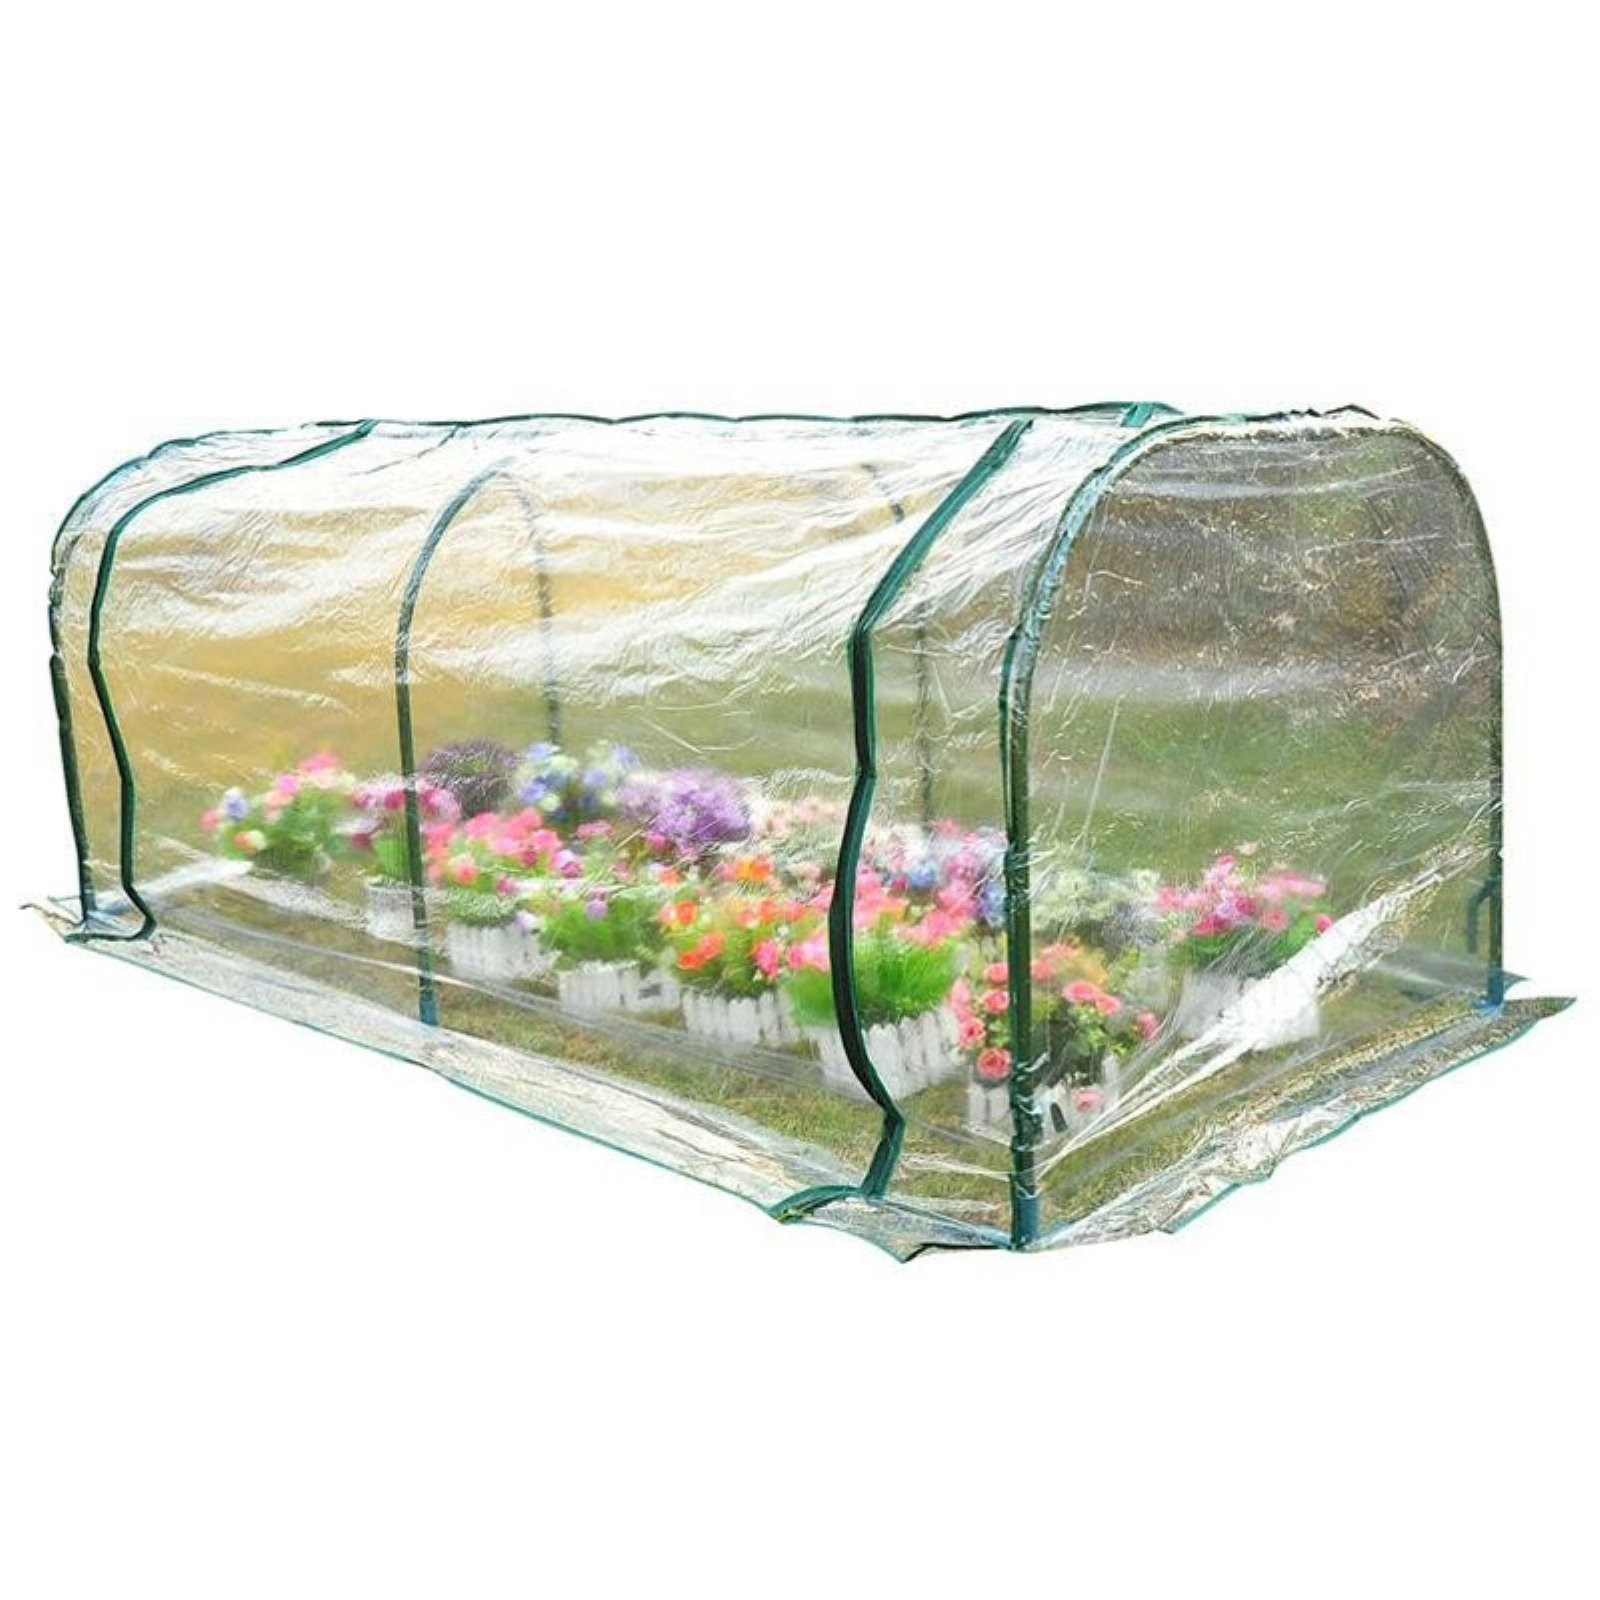 Outsunny 7'x3'x2.6' Portable Backyard Flower Garden Greenhouse by Aosom LLC